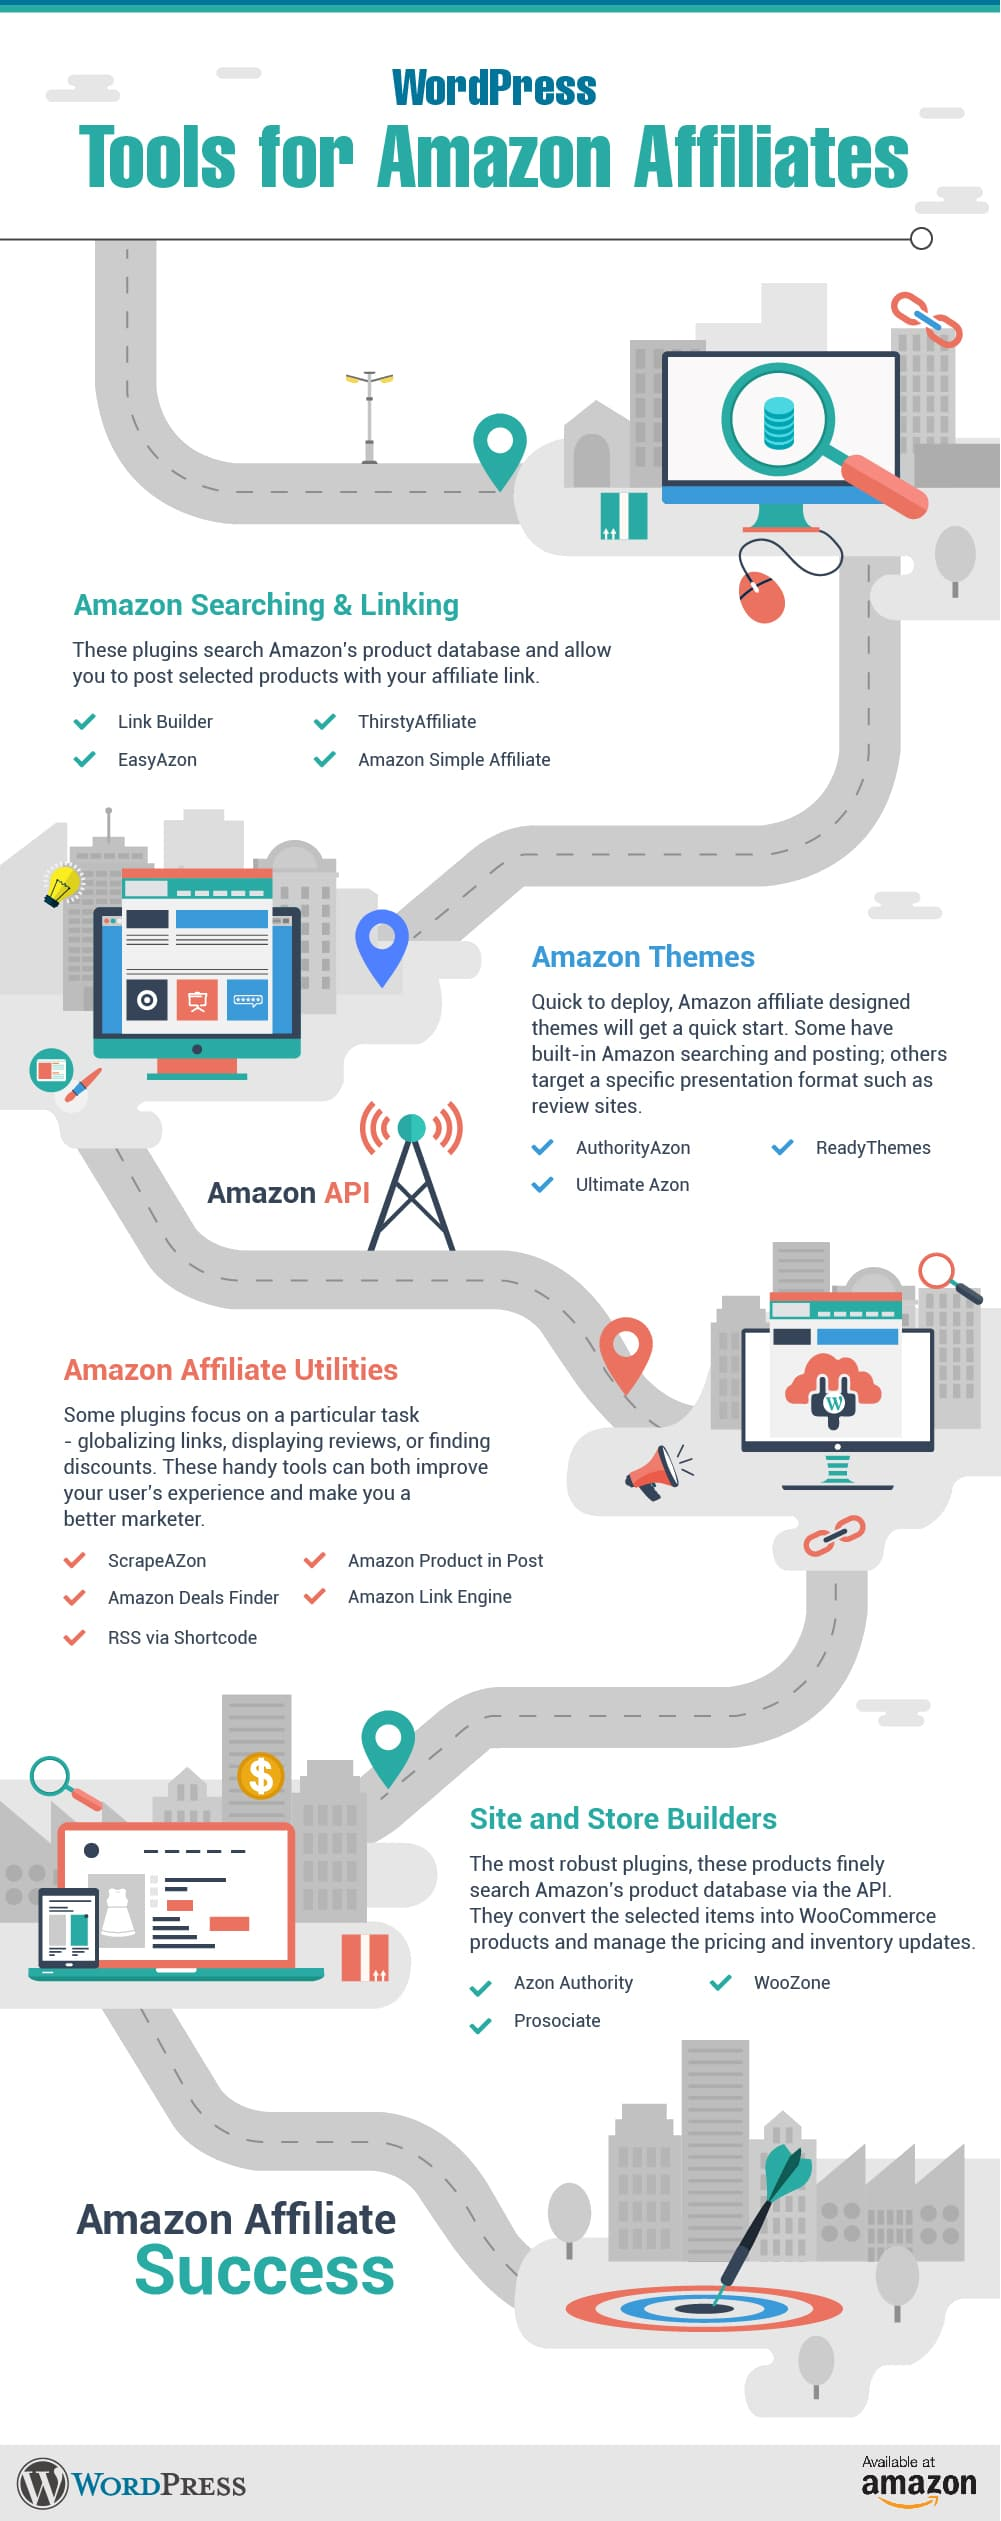 Wordpress Theme and Plugin Tools for Amazon Affiliates